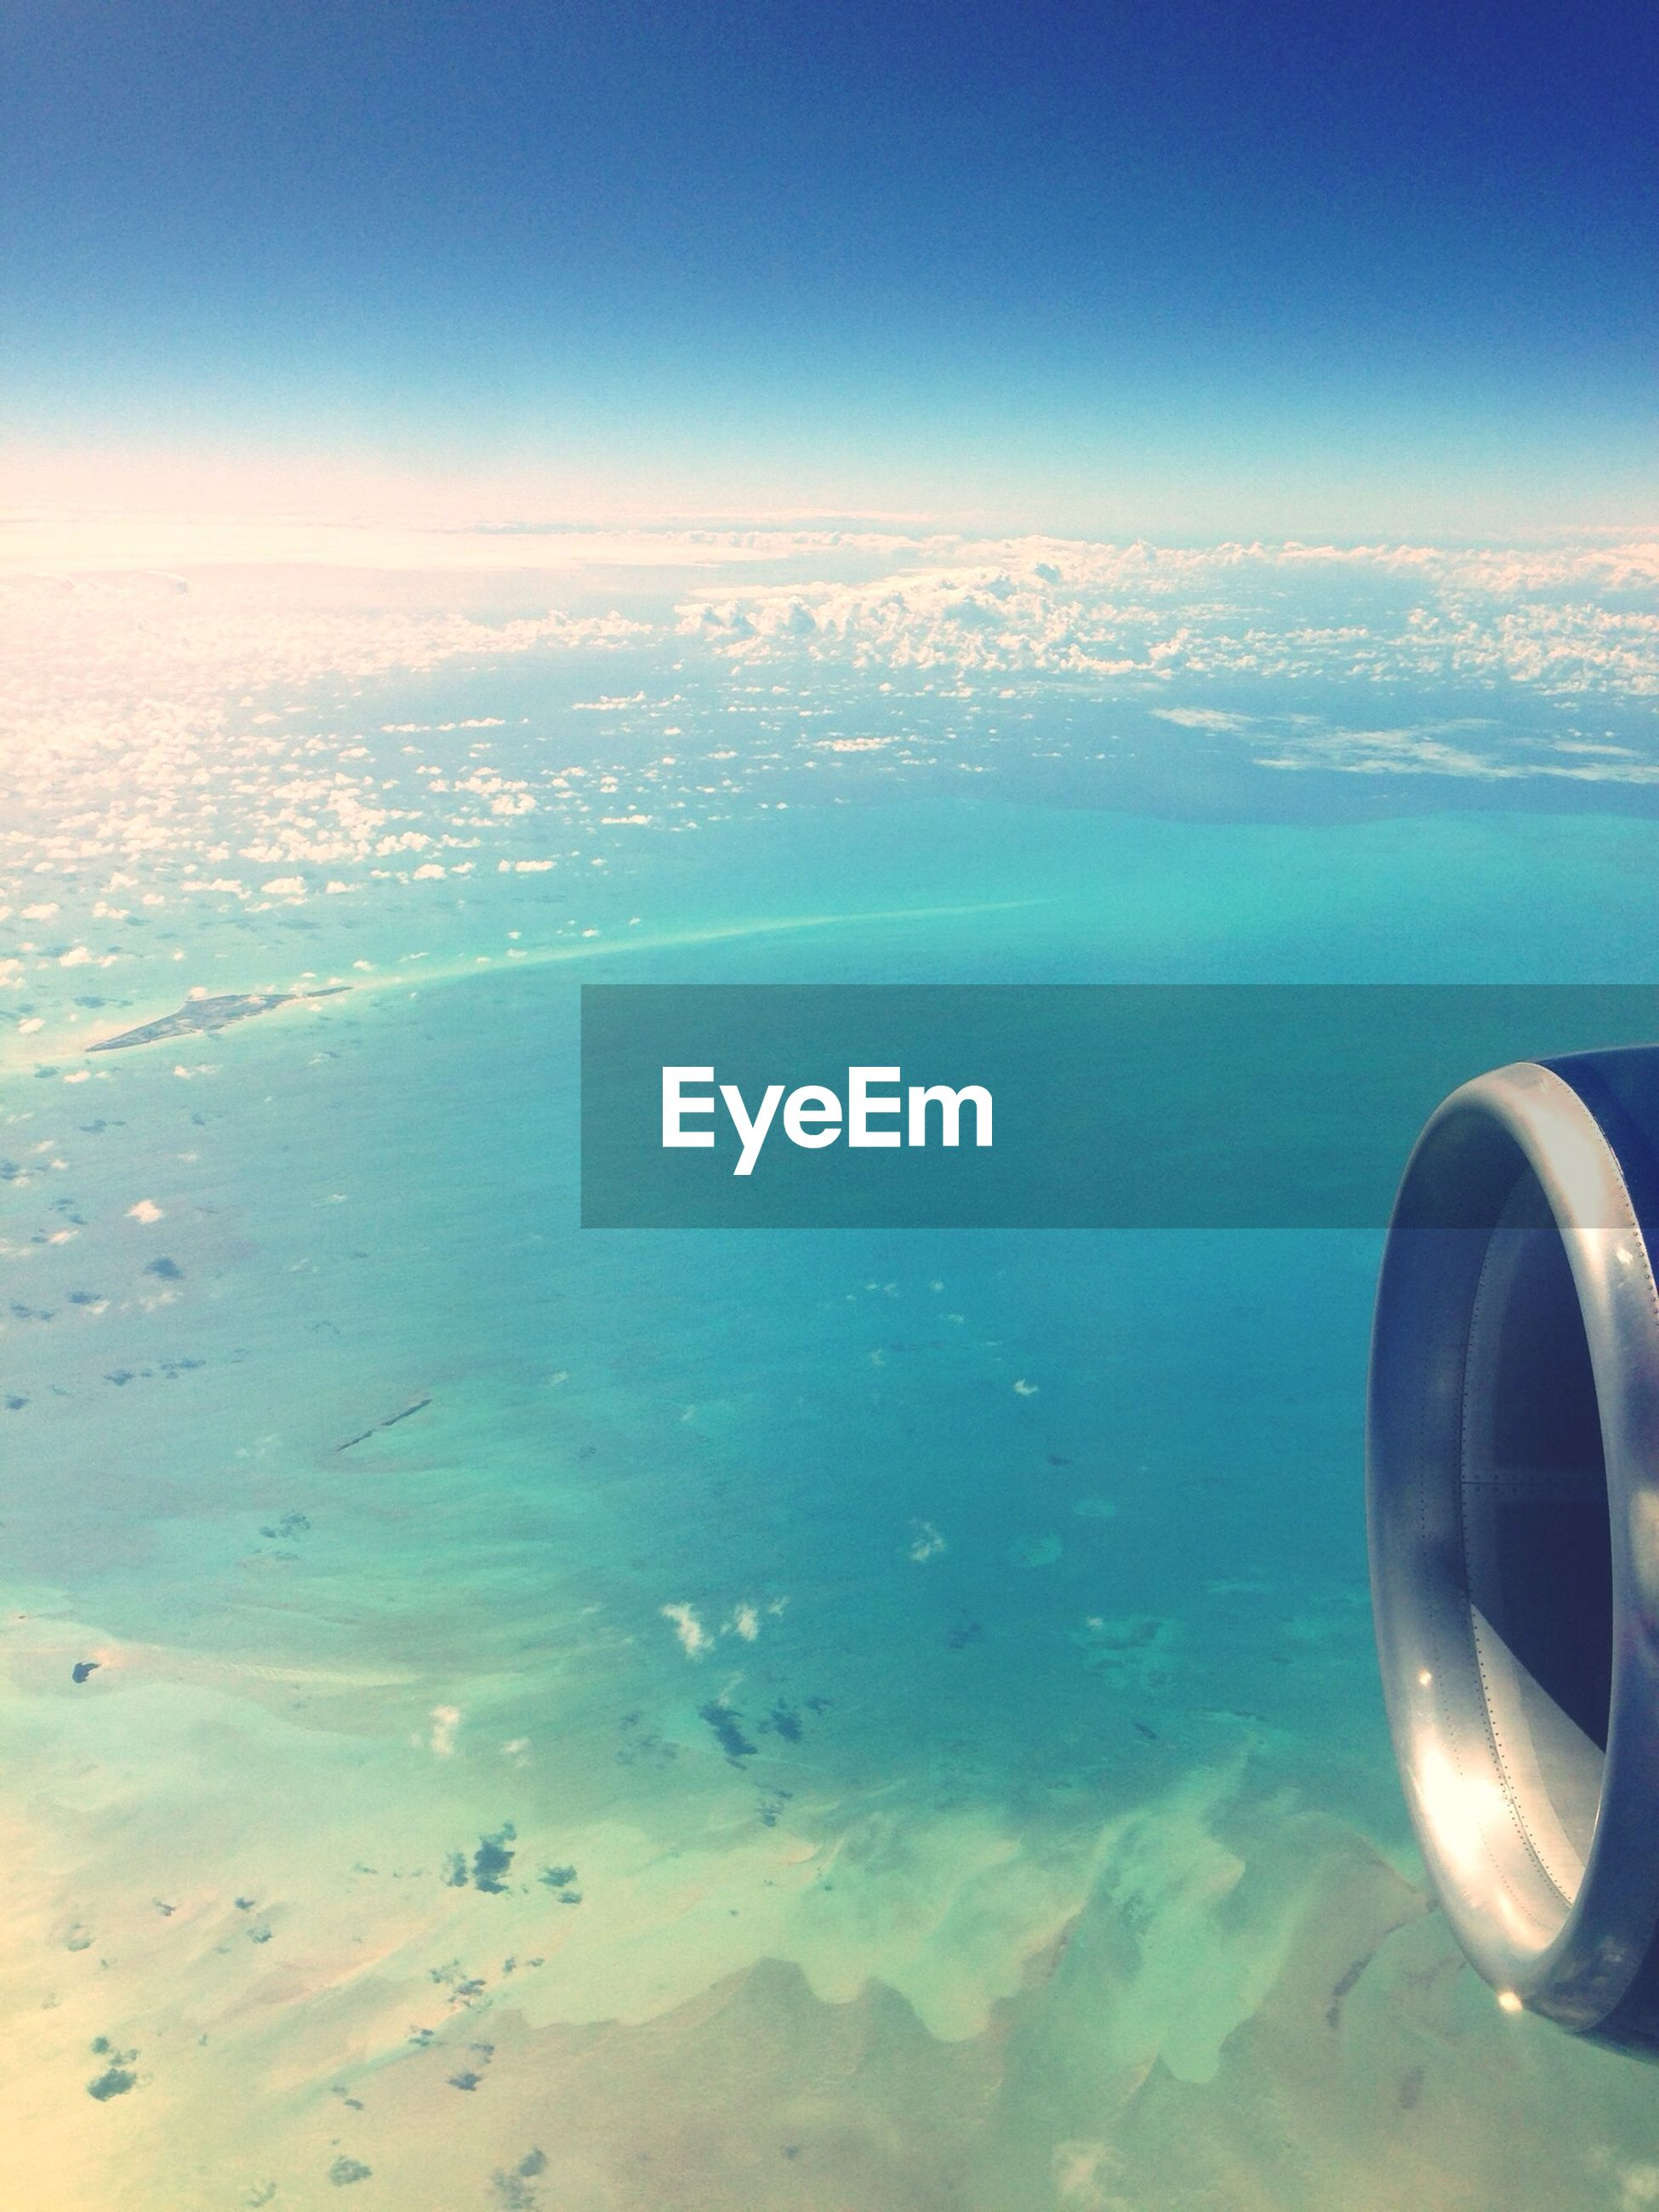 sea, water, scenics, sky, horizon over water, beauty in nature, tranquil scene, blue, tranquility, aerial view, nature, transportation, airplane, mode of transport, idyllic, cloud - sky, seascape, coastline, travel, air vehicle